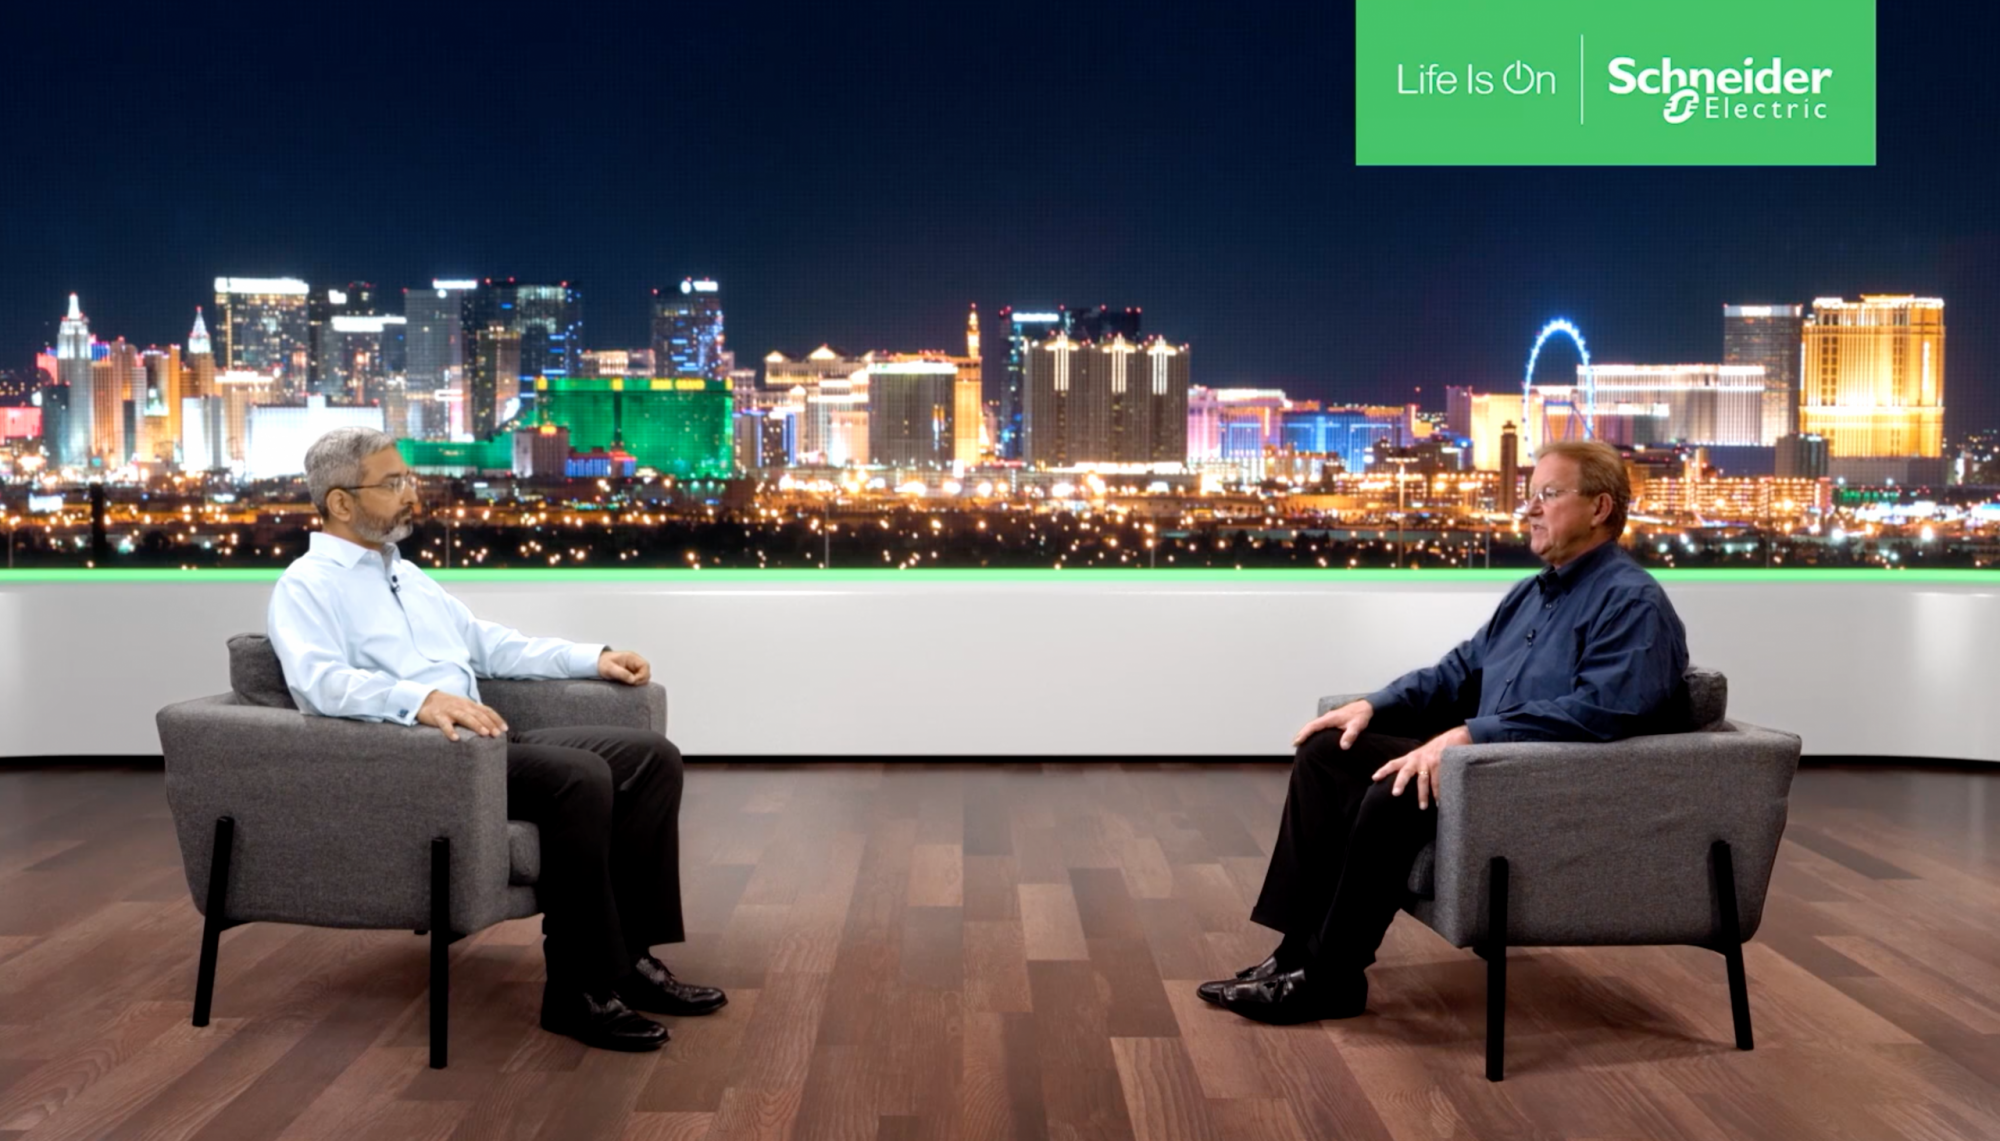 At CES 2021, Manish Pant, CEO & Executive VP for Home and Distribution Business, and Richard Korthauer, VP, Home and Distribution Business for Schneider Electric, discuss how the Square D Energy Center makes a home smart and sustainable.